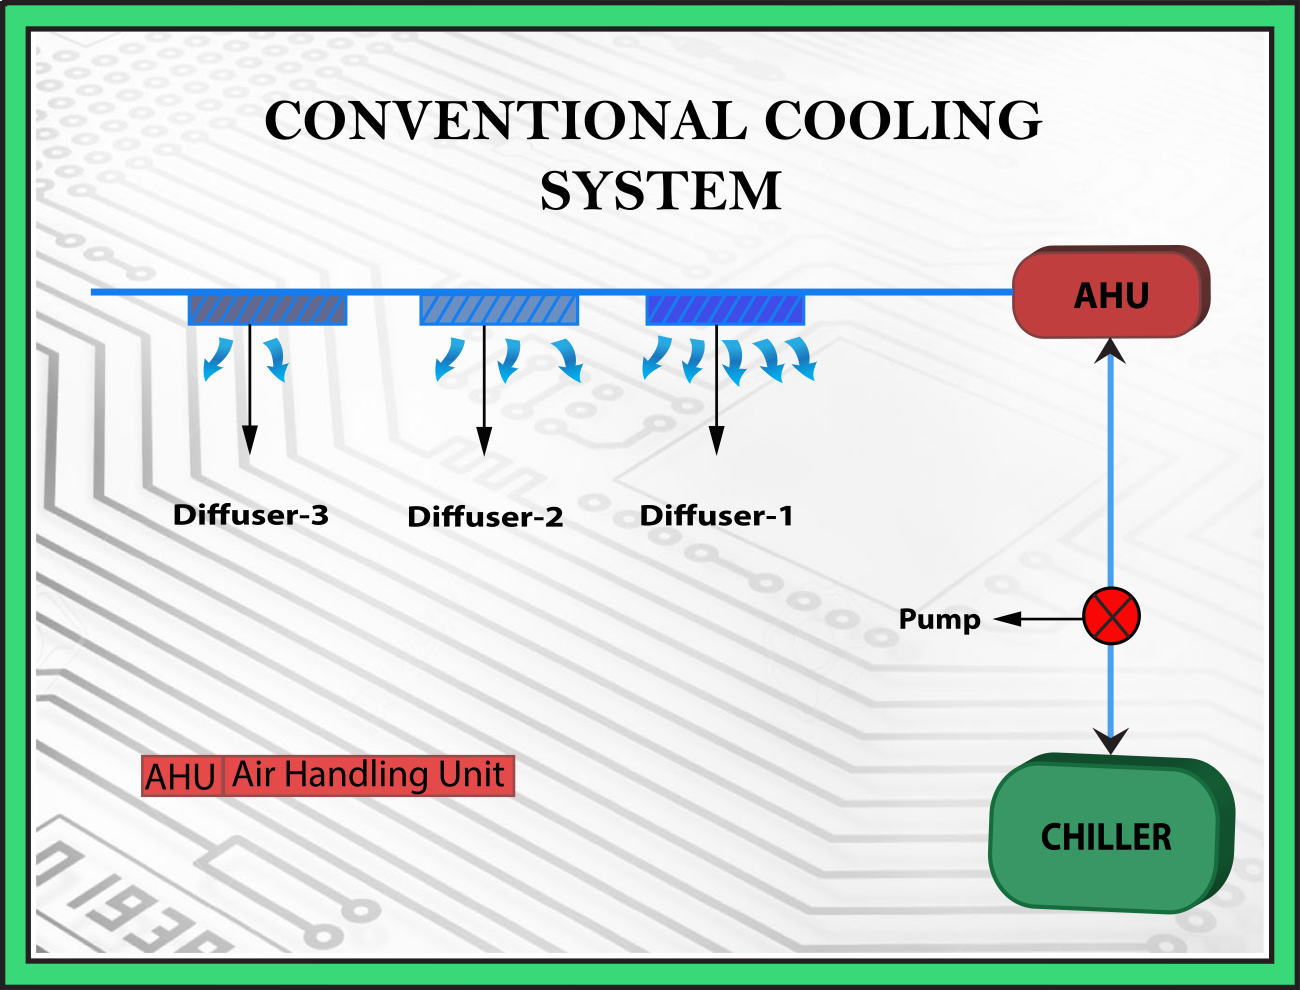 Conventional Cooling system